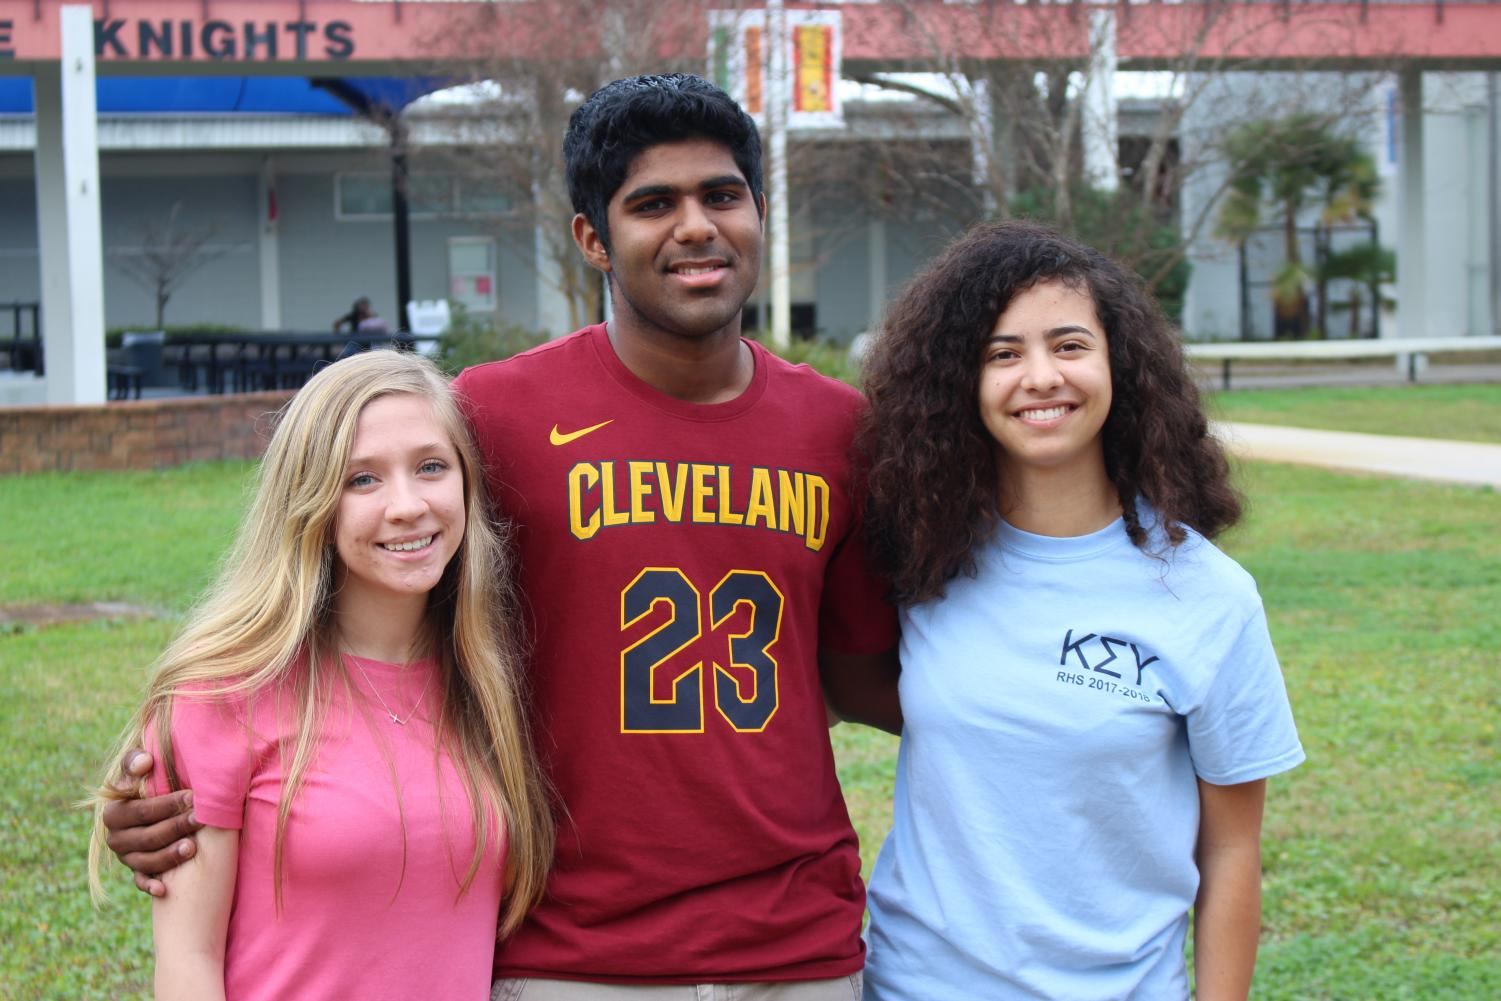 Valedictorian for IB Catherine Johnson, Salutatorian for IB Milin Kurup and Valedictorian for traditional Eve Glenn all smile for a celebratory photo.